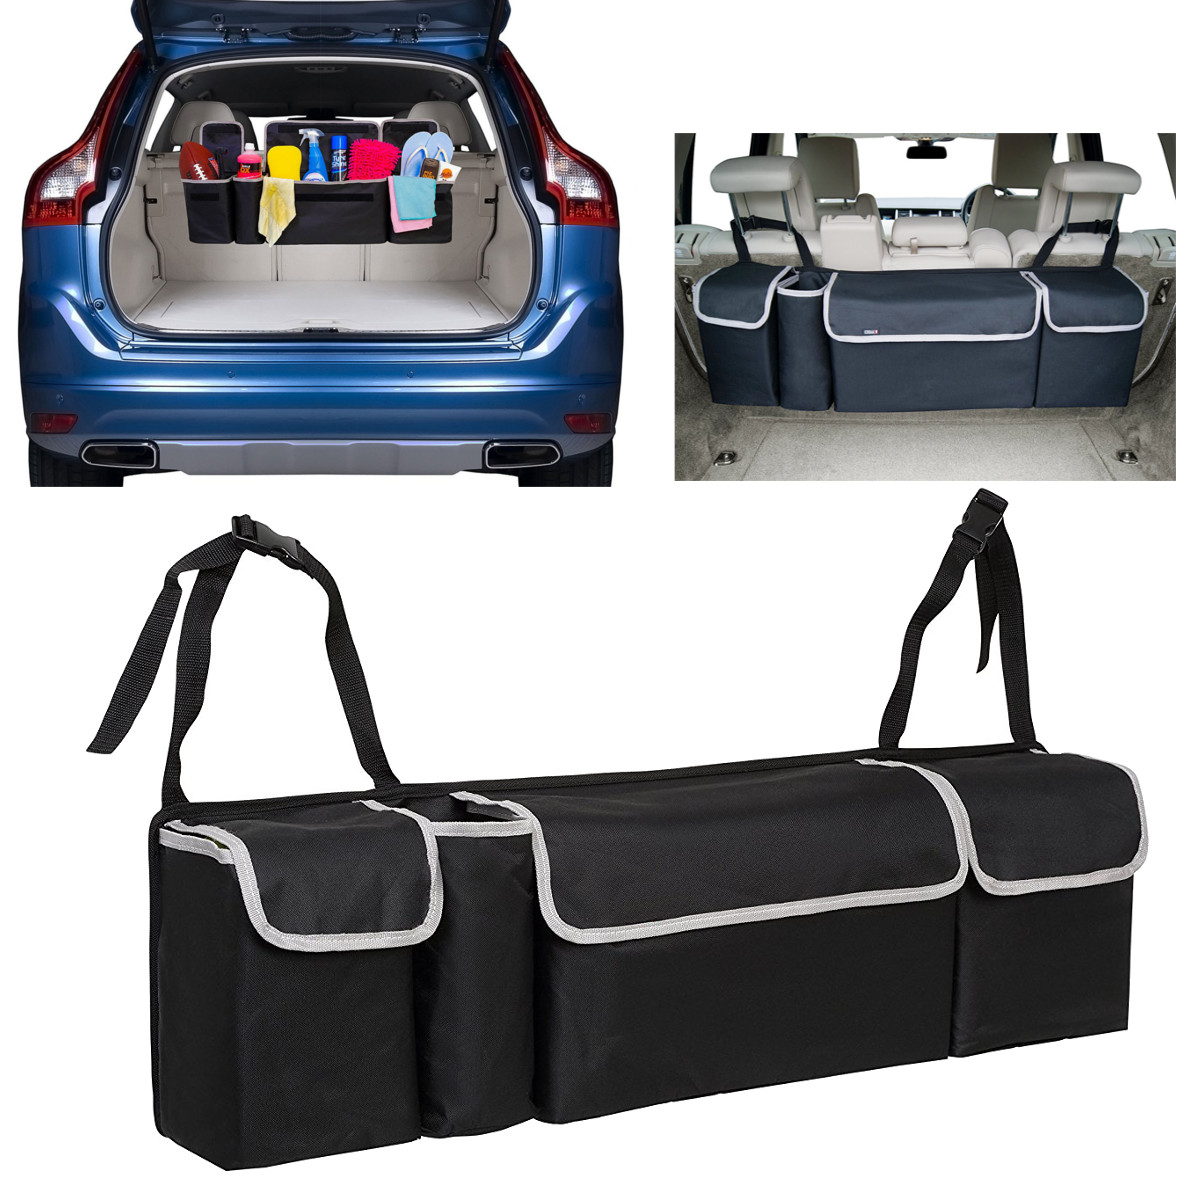 Auto Car Back Seat Multi Pocket Storage Organizer Tissue Holder Bag